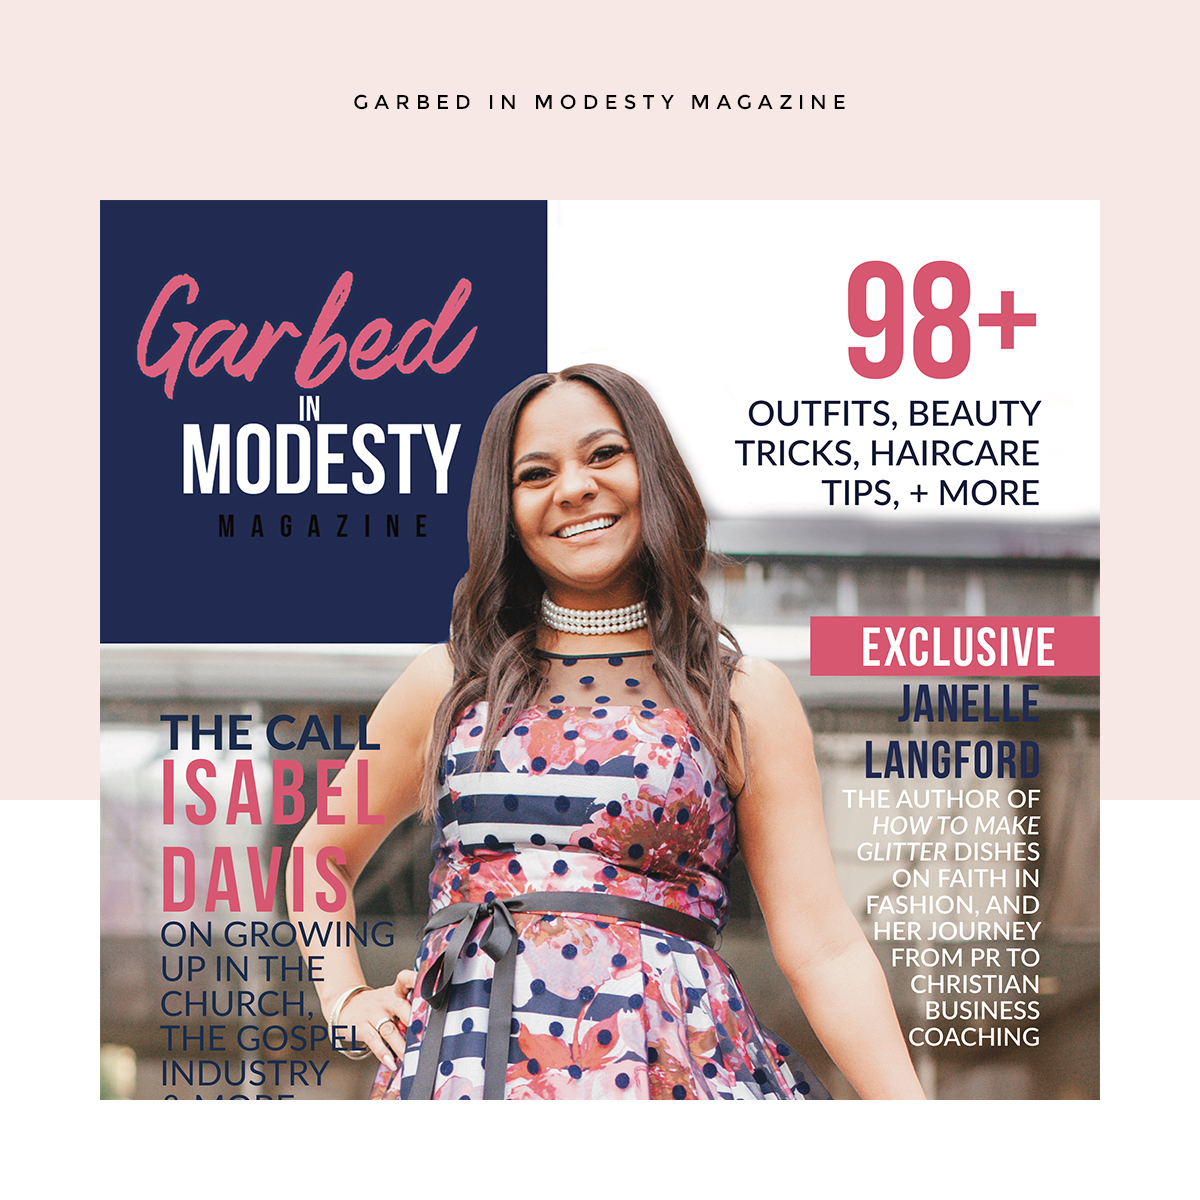 Garbed in Modesty